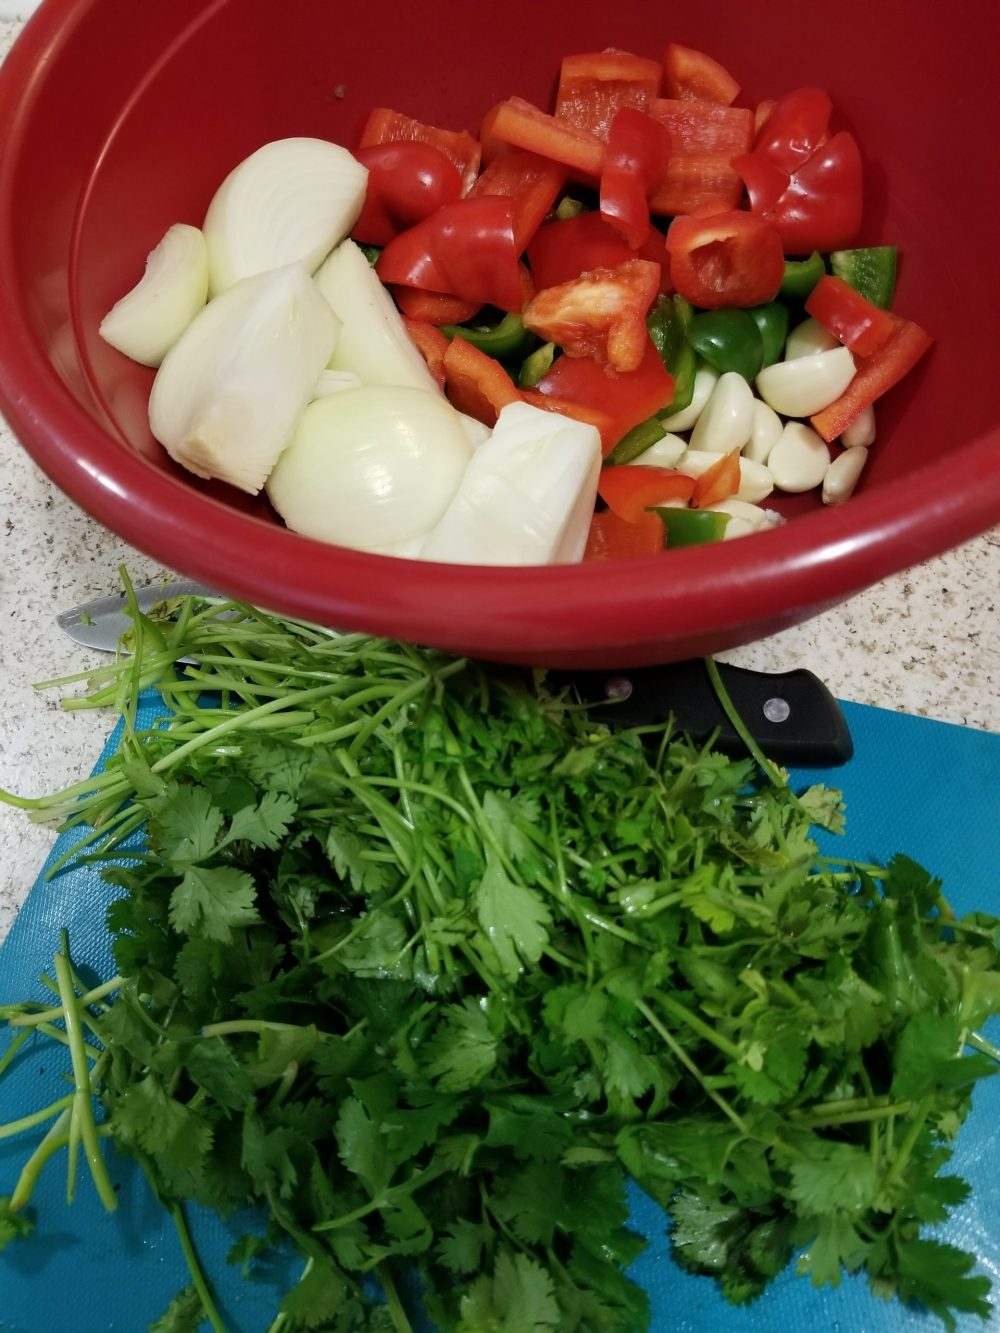 Chopped cilantro, onion, red bell pepper, green bell pepper, and garlic in a large bowl.